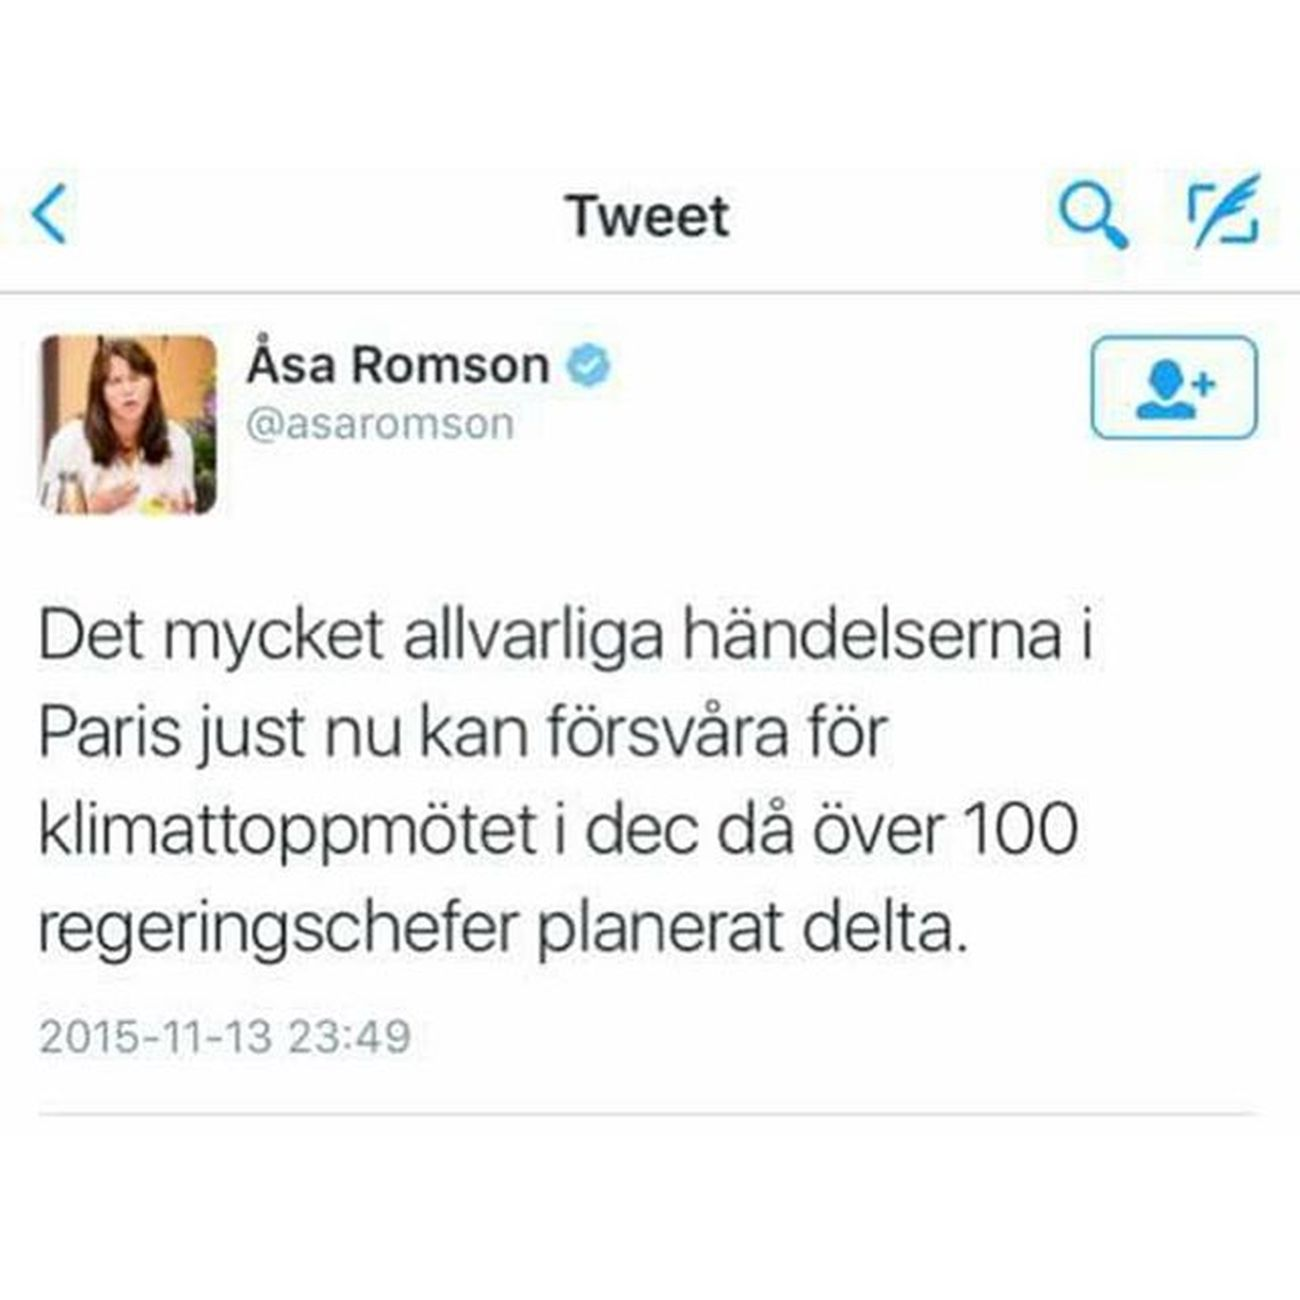 MEANWHILE IN SWEDEN Deputy Prime Minister Miss Åsa Romson (green) tweets: »The very serious events in Paris right now may complicate the climate summit in December, in which more than 100 Heads of Government are scheduled to participate.« Now you know the priorities of the Government of Sweden. åsaromson ParisAttacks Paris Parisshootings parisattack parisshooting